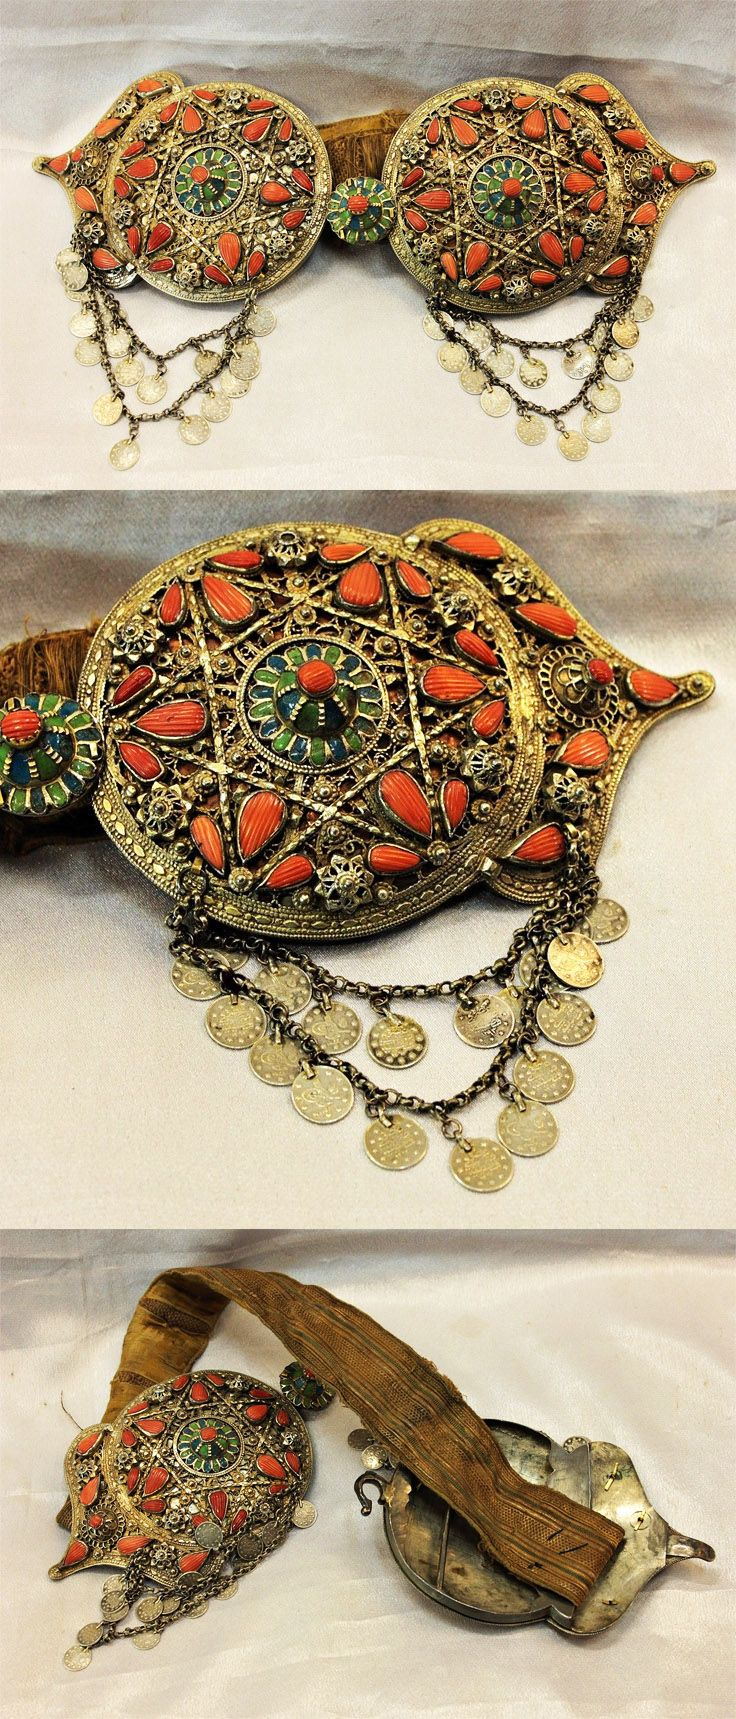 Antique solid silver, gilt, enamel and coral Ottoman belt buckle | 18th century | 10'000$